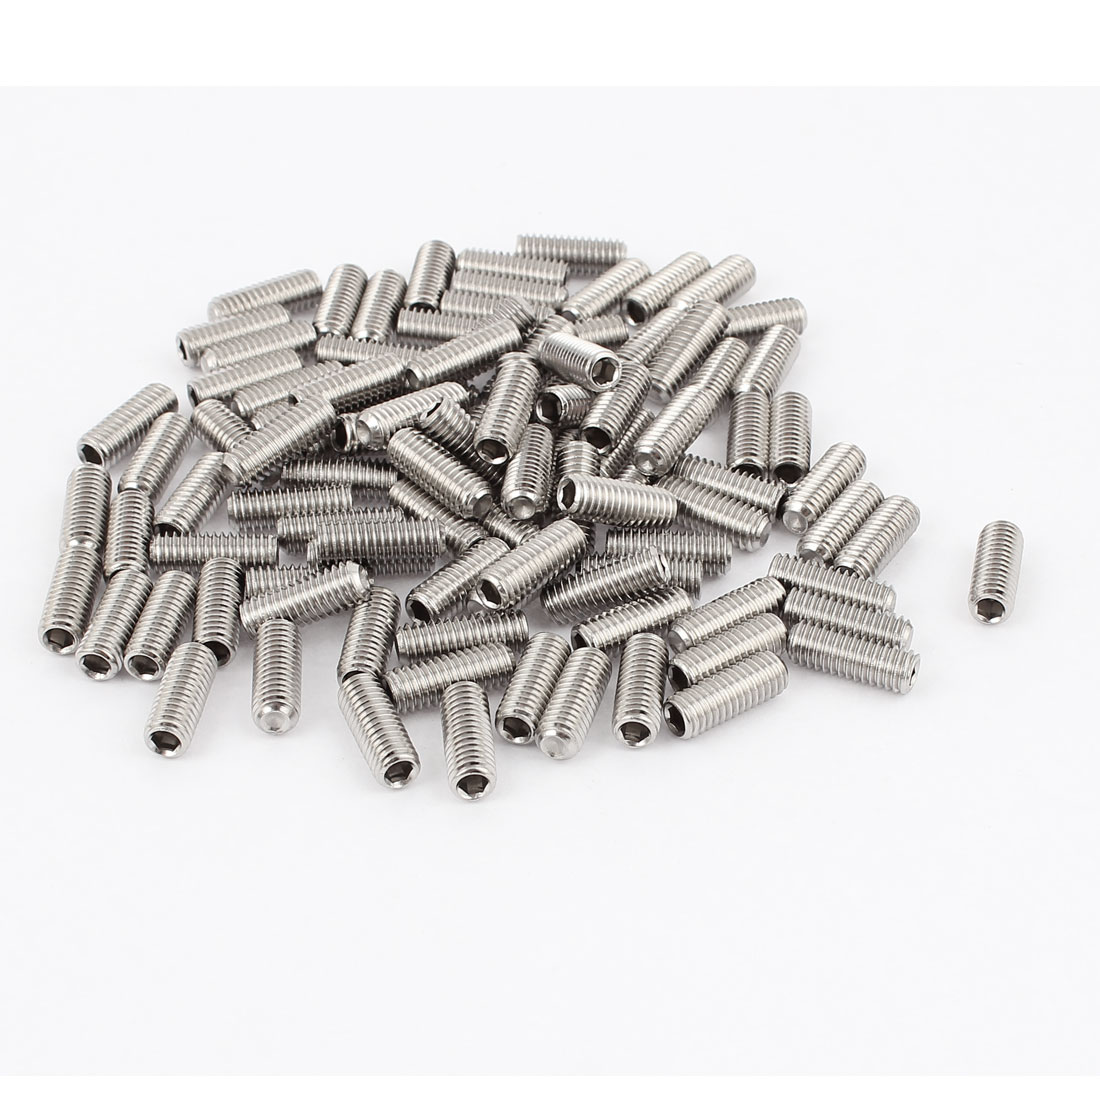 M6x16mm Stainless Steel Hex Socket Set Cap Point Grub Screws Silver Tone 100Pcs